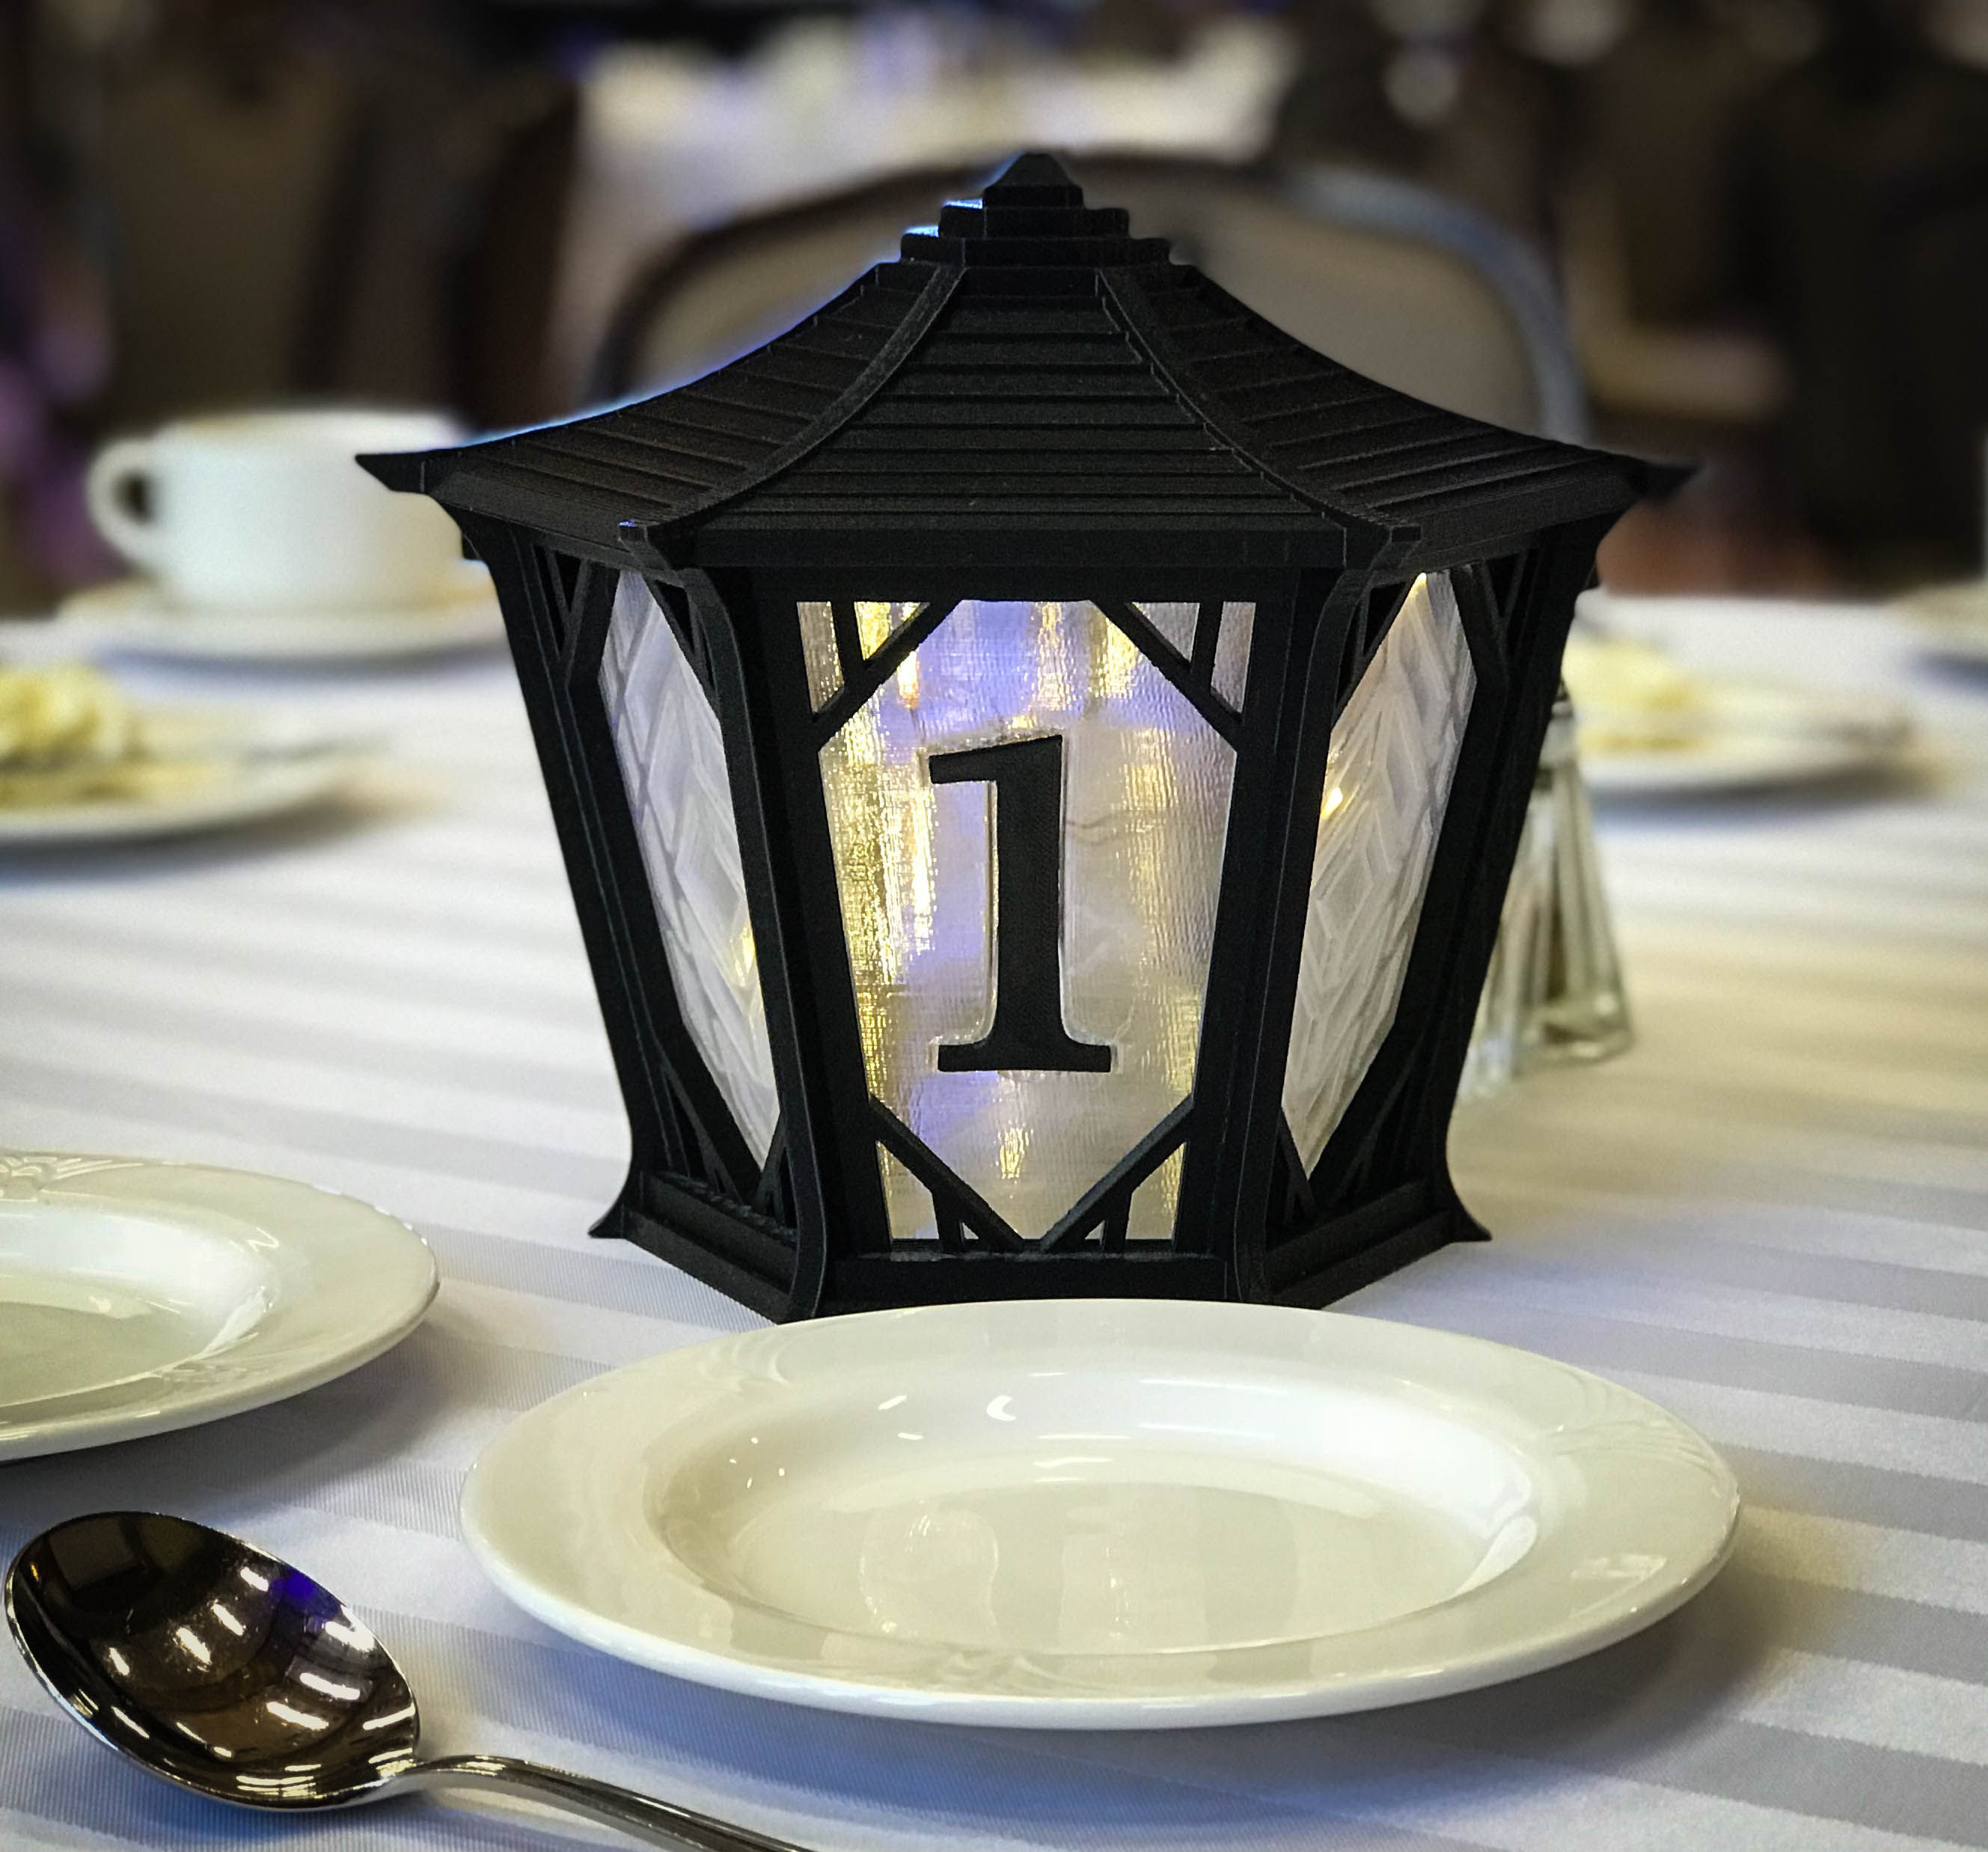 Japanese Lantern Centerpieces For Weddingautodesk Online Gallery